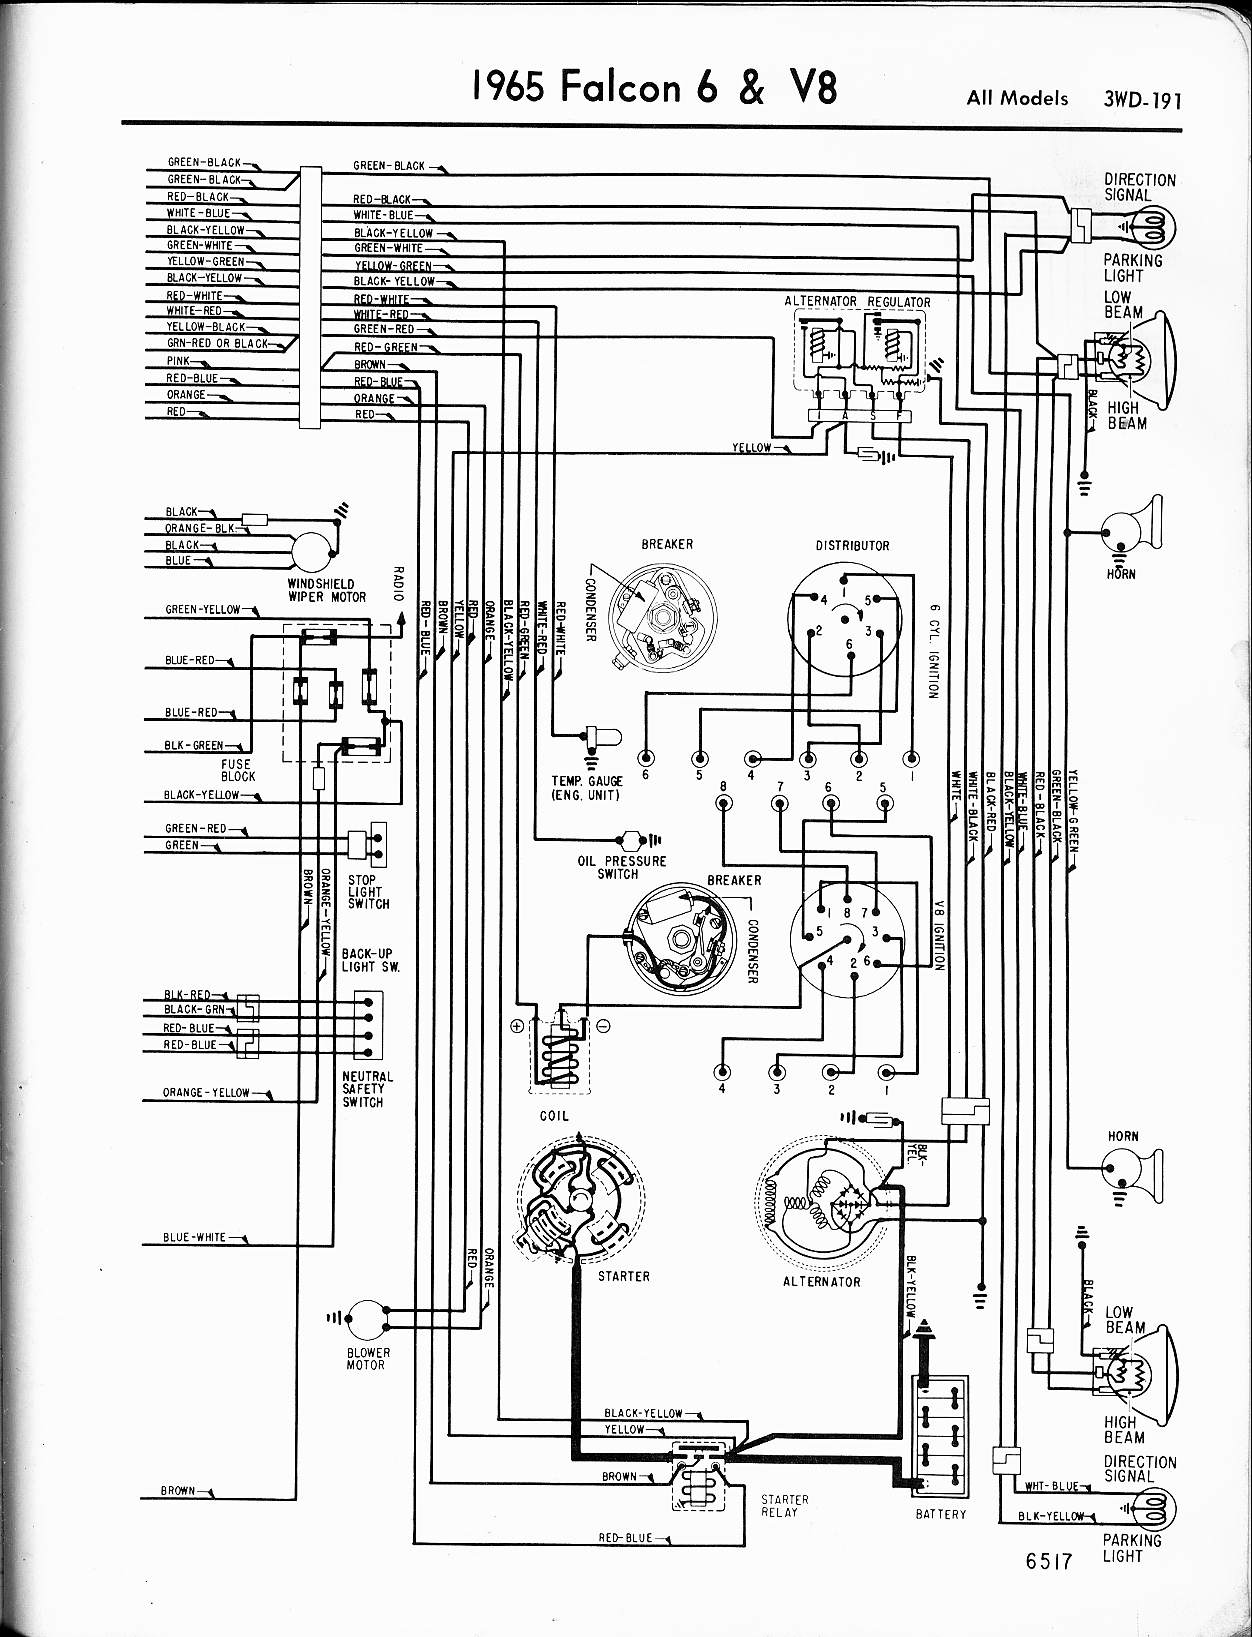 MWire5765 191 65 comet wiring diagram 65 ford comet \u2022 wiring diagrams j squared co 1965 ford thunderbird wiring diagram at crackthecode.co